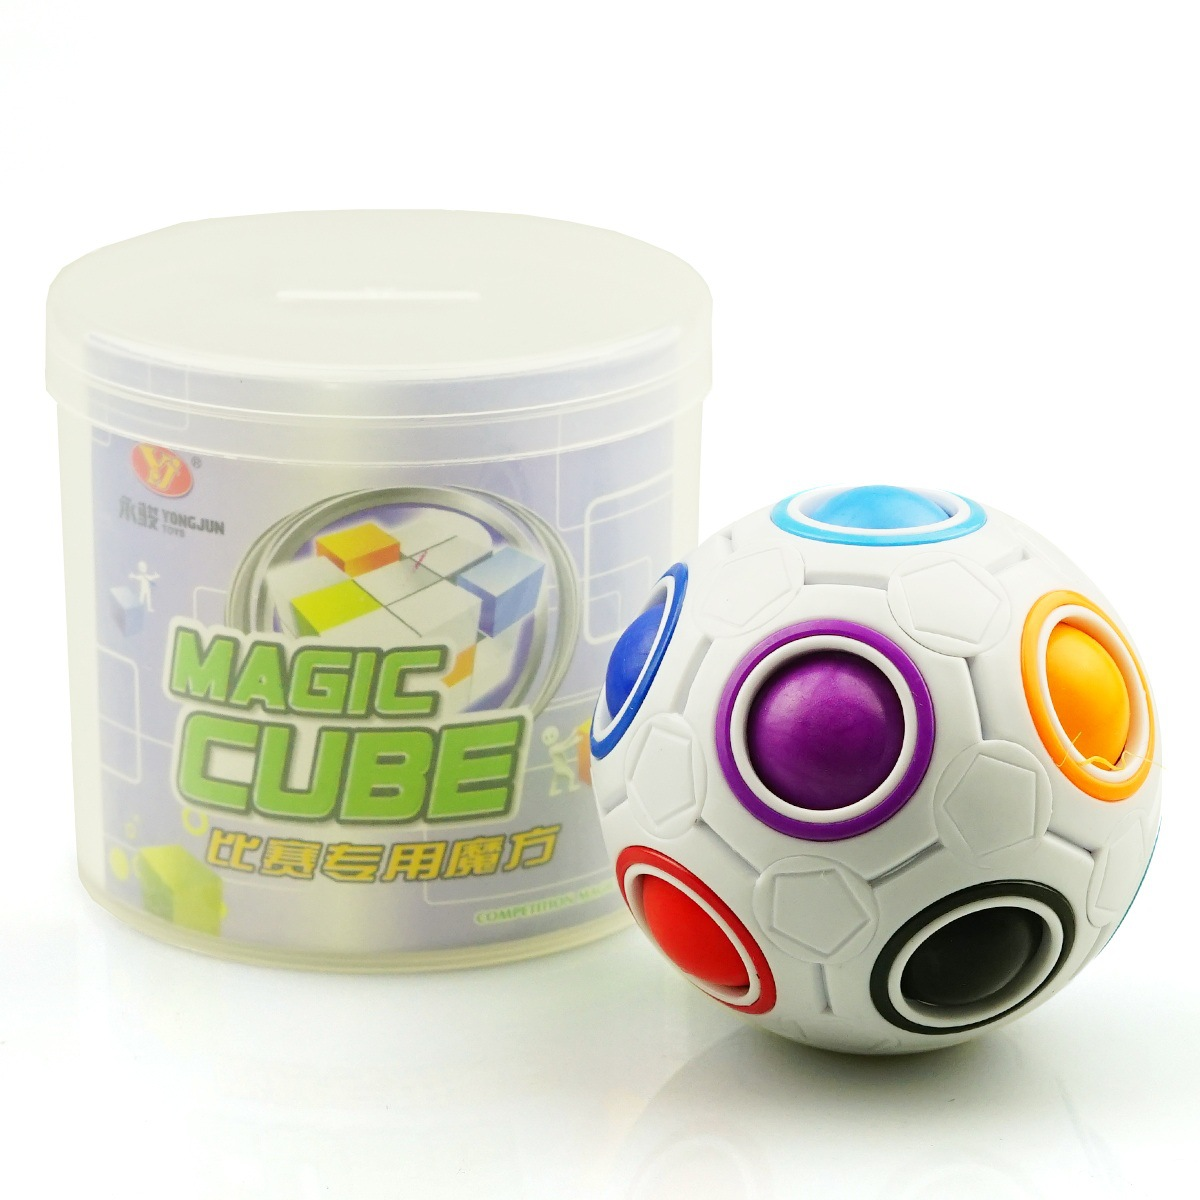 Magic Rainbow Ball Magic Football Puzzle Ball Cube Spherical Creative Educational Toys For Children Gift